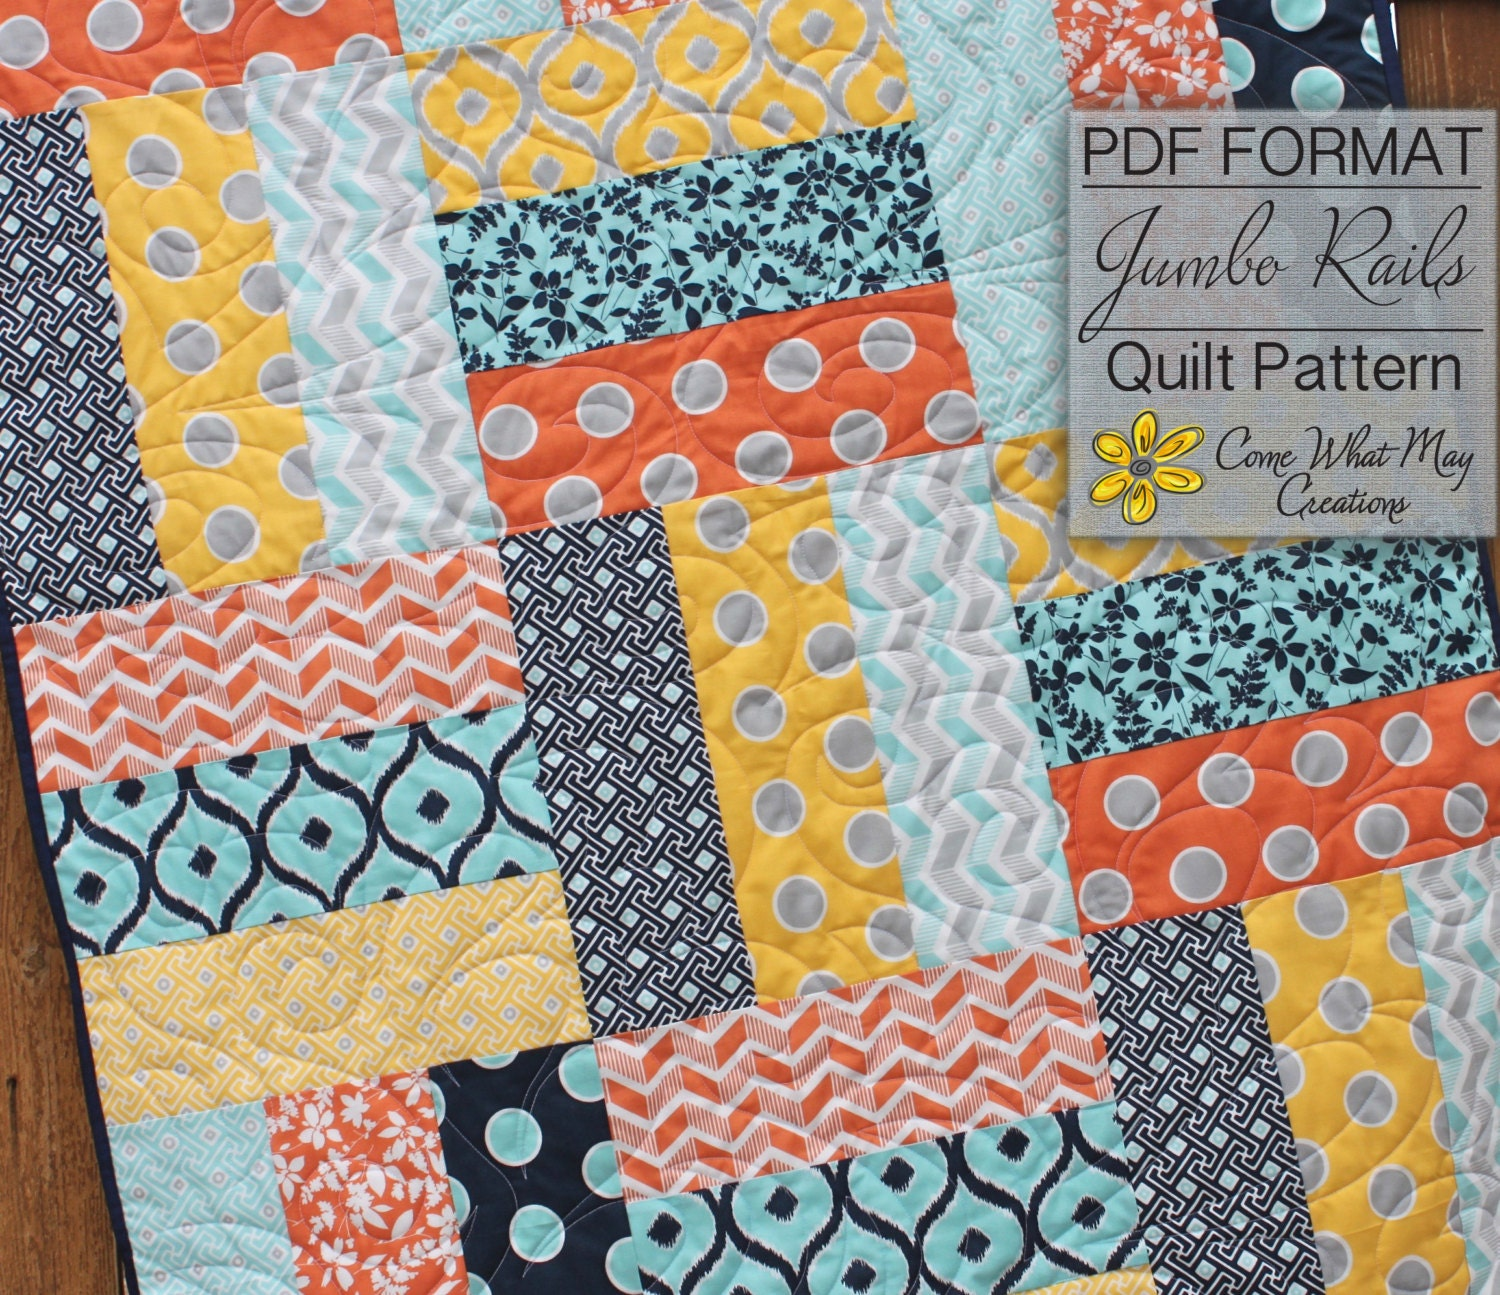 Easy Quilt Patterns Rail Fence : Baby Quilt Pattern, Lap Quilt Pattern, Jumbo Rails Baby Quilt Pattern, Rail Fence Quilt Pattern ...